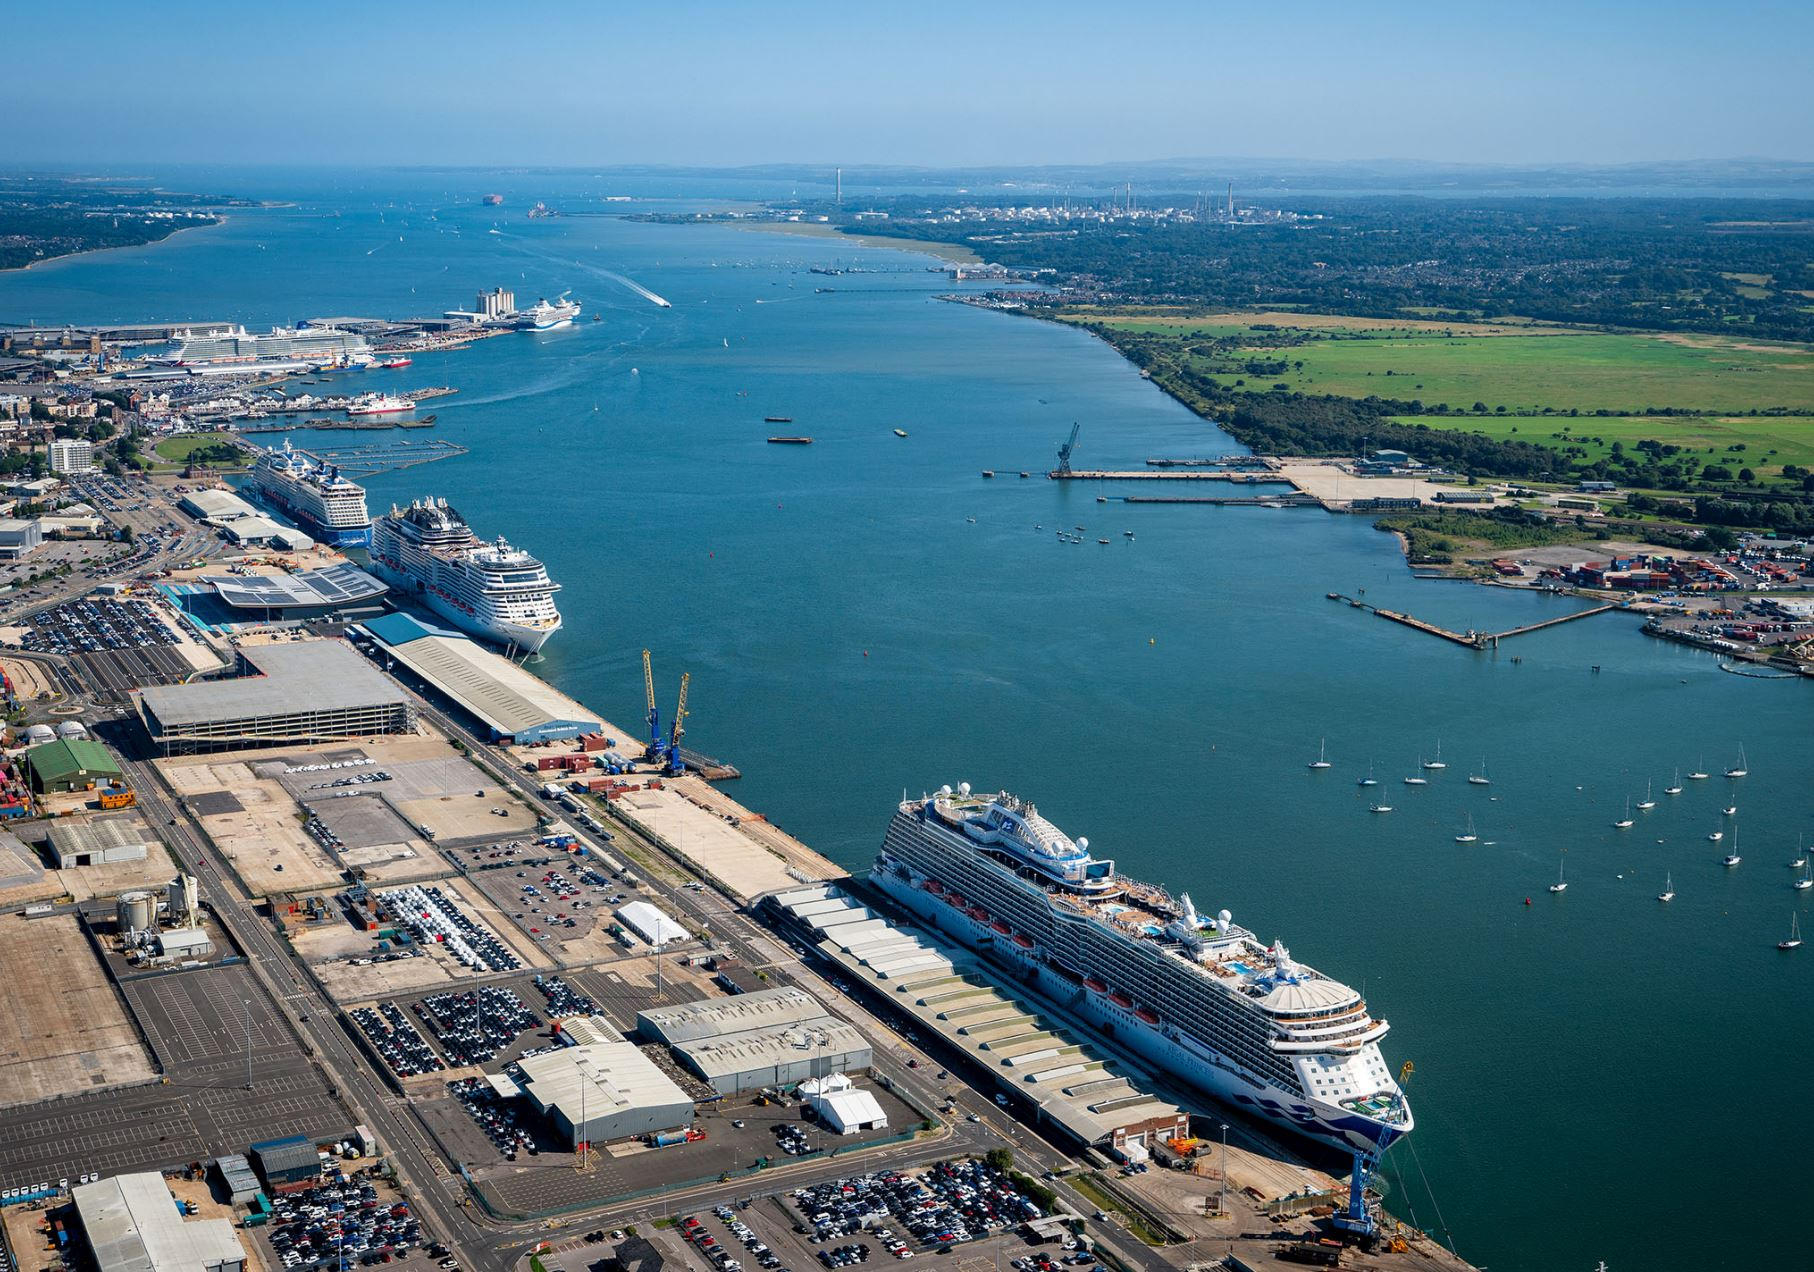 View from Southampton's western docks as five ships welcome passengers - ABP  (August 2021)